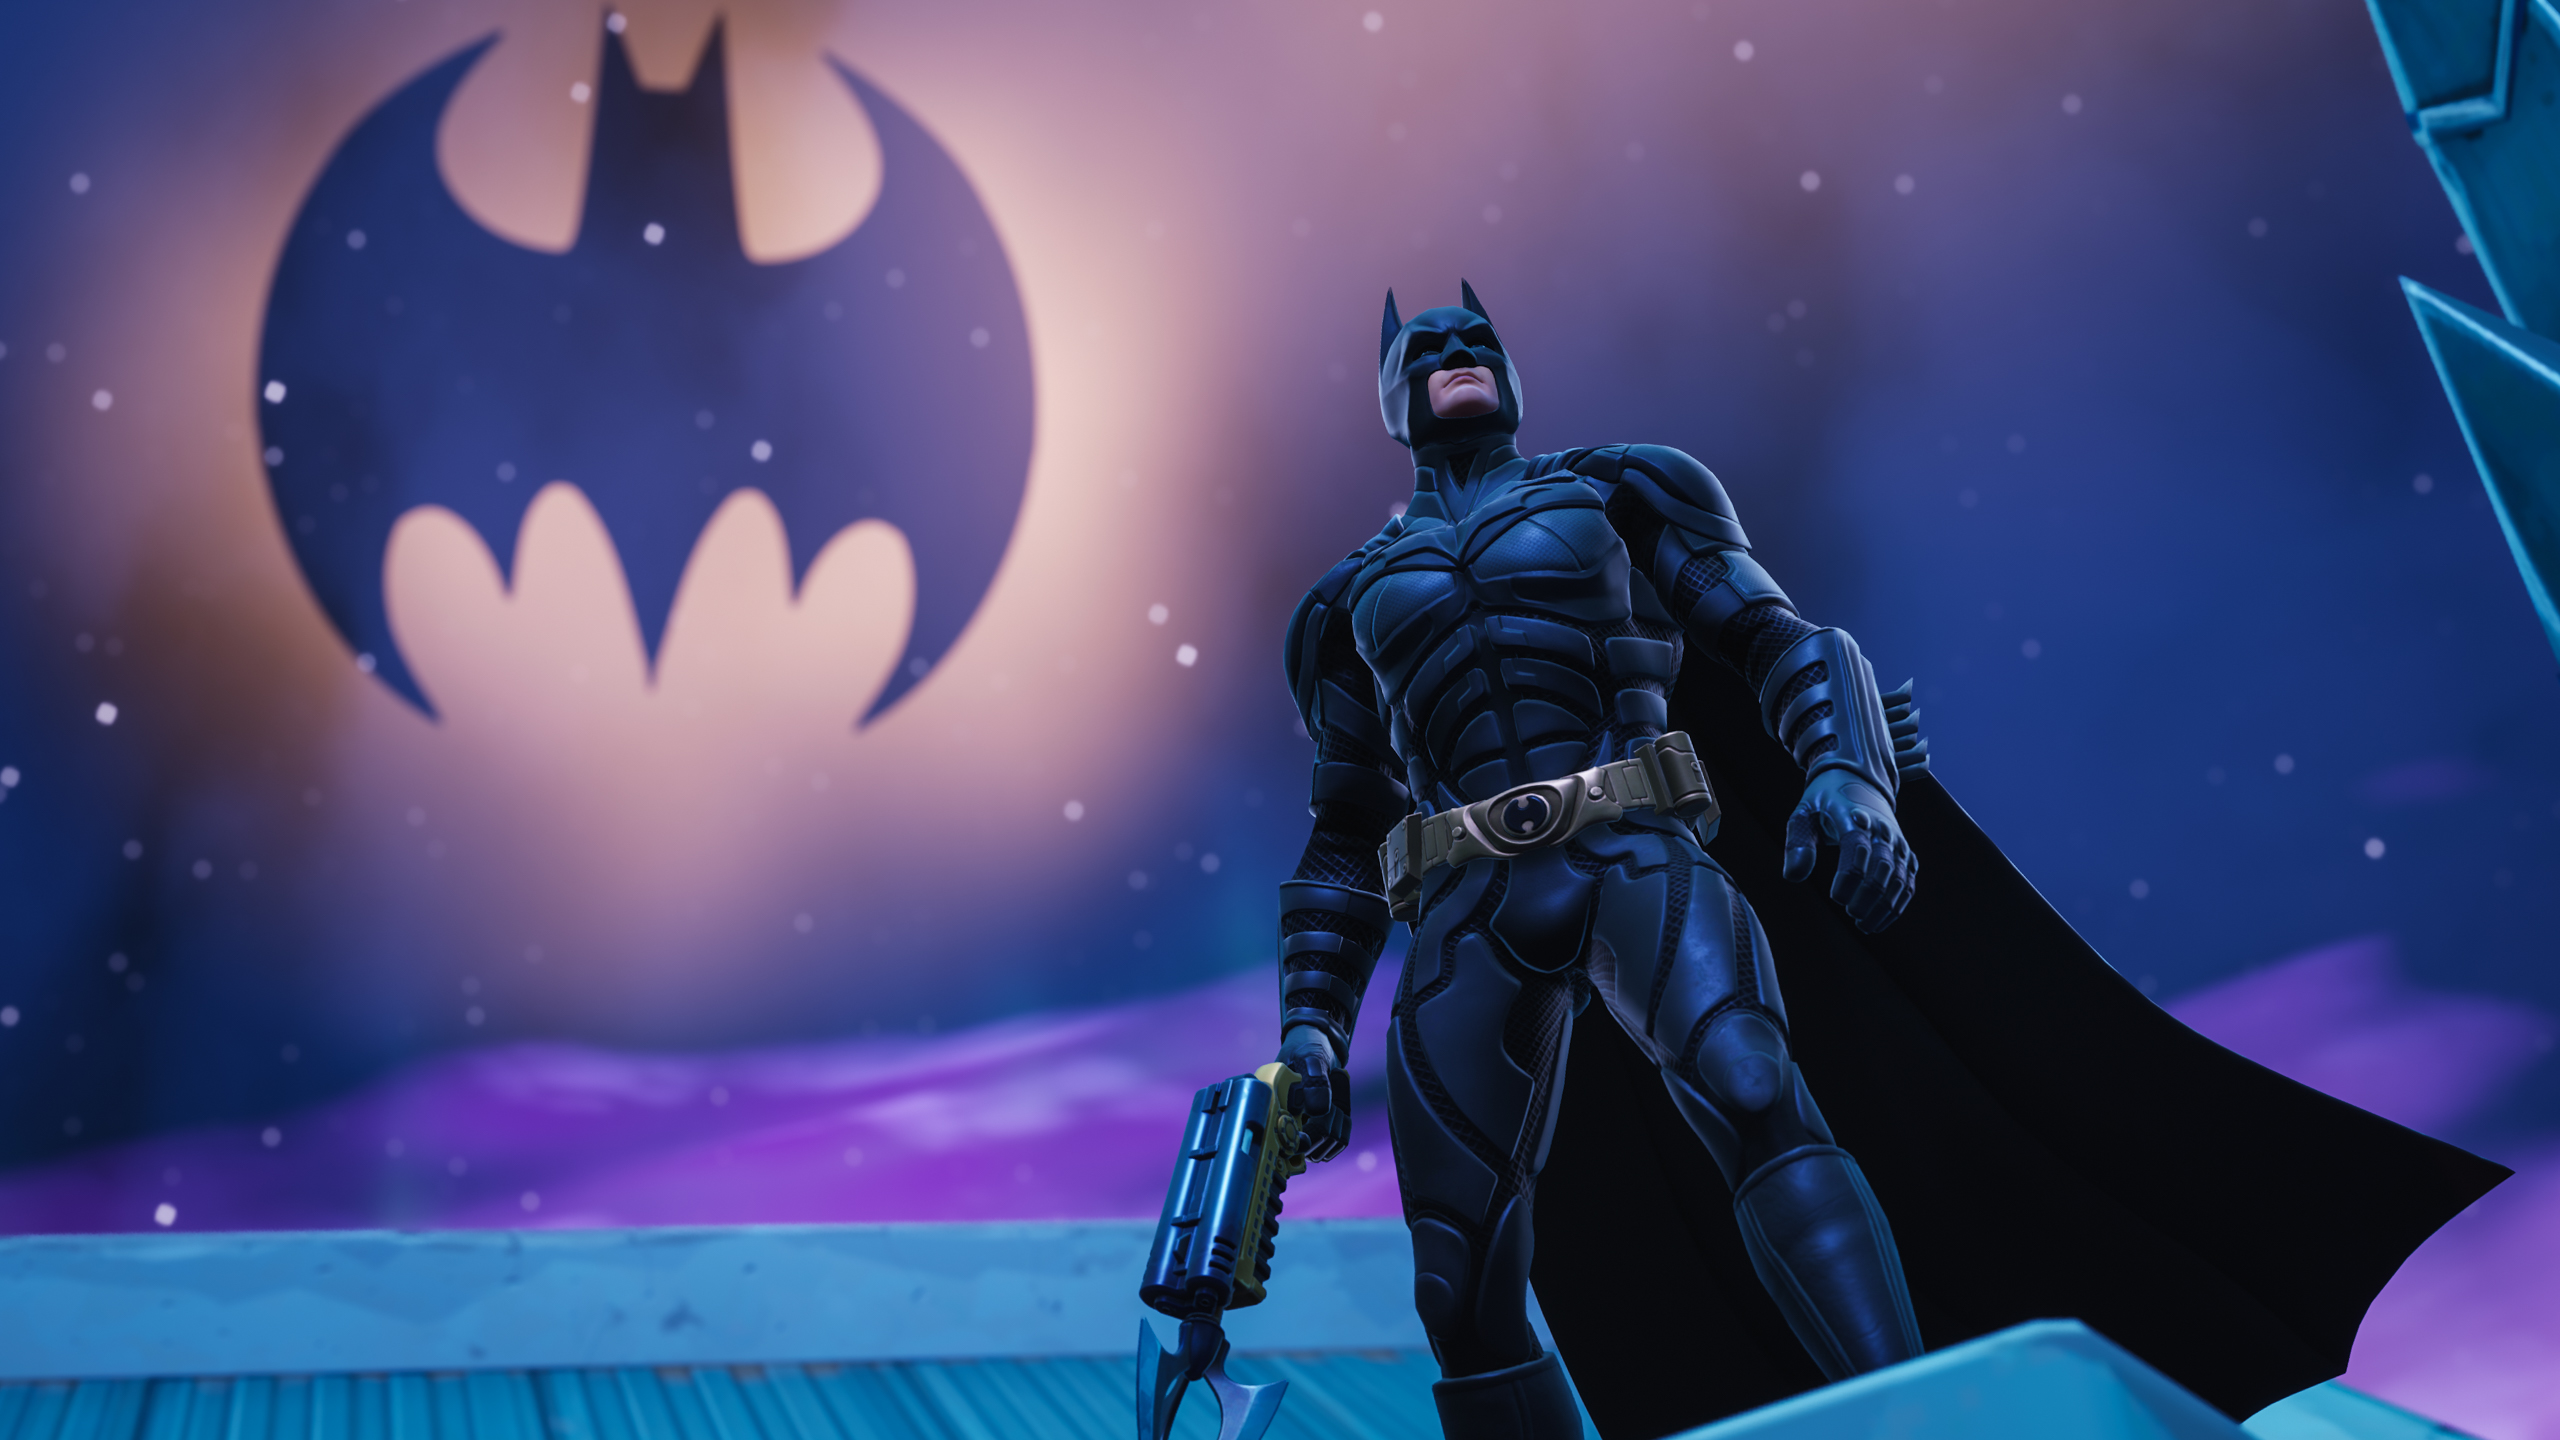 Fortnite Batman Hd Games 4k Wallpapers Images Backgrounds Photos And Pictures